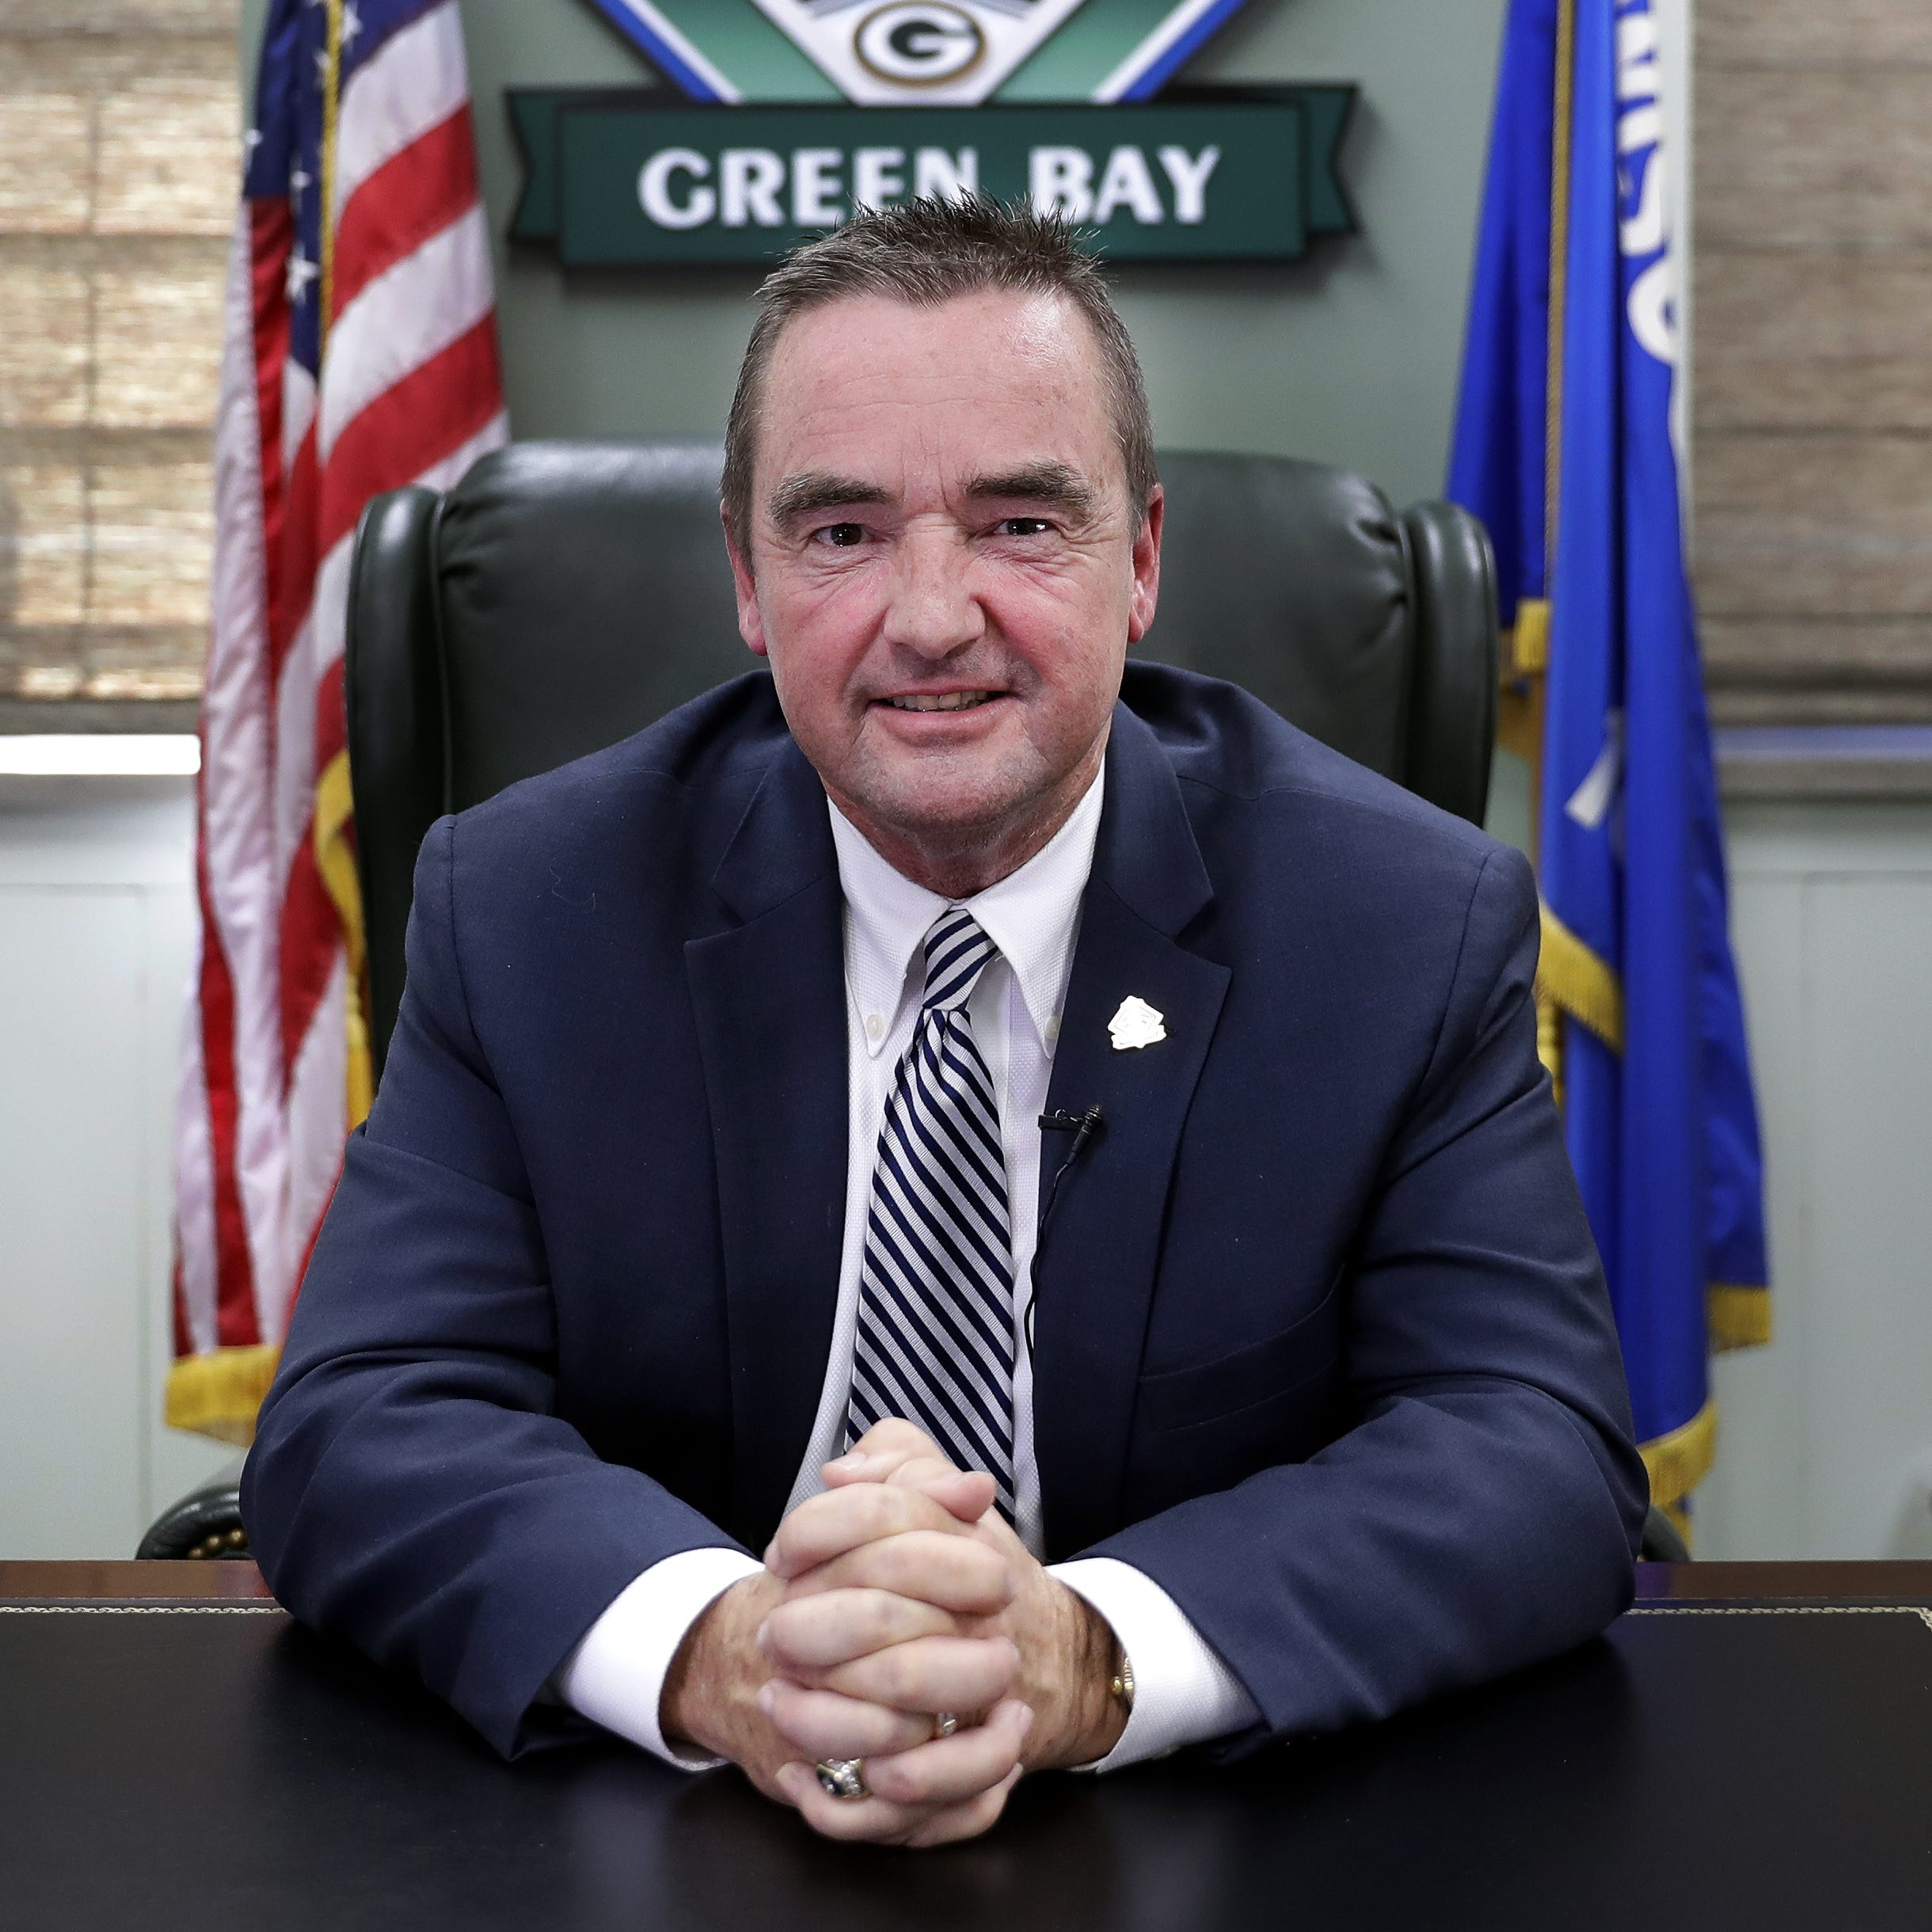 'I don't want to be mayor for life': After 16 years in office, Jim Schmitt embraces change